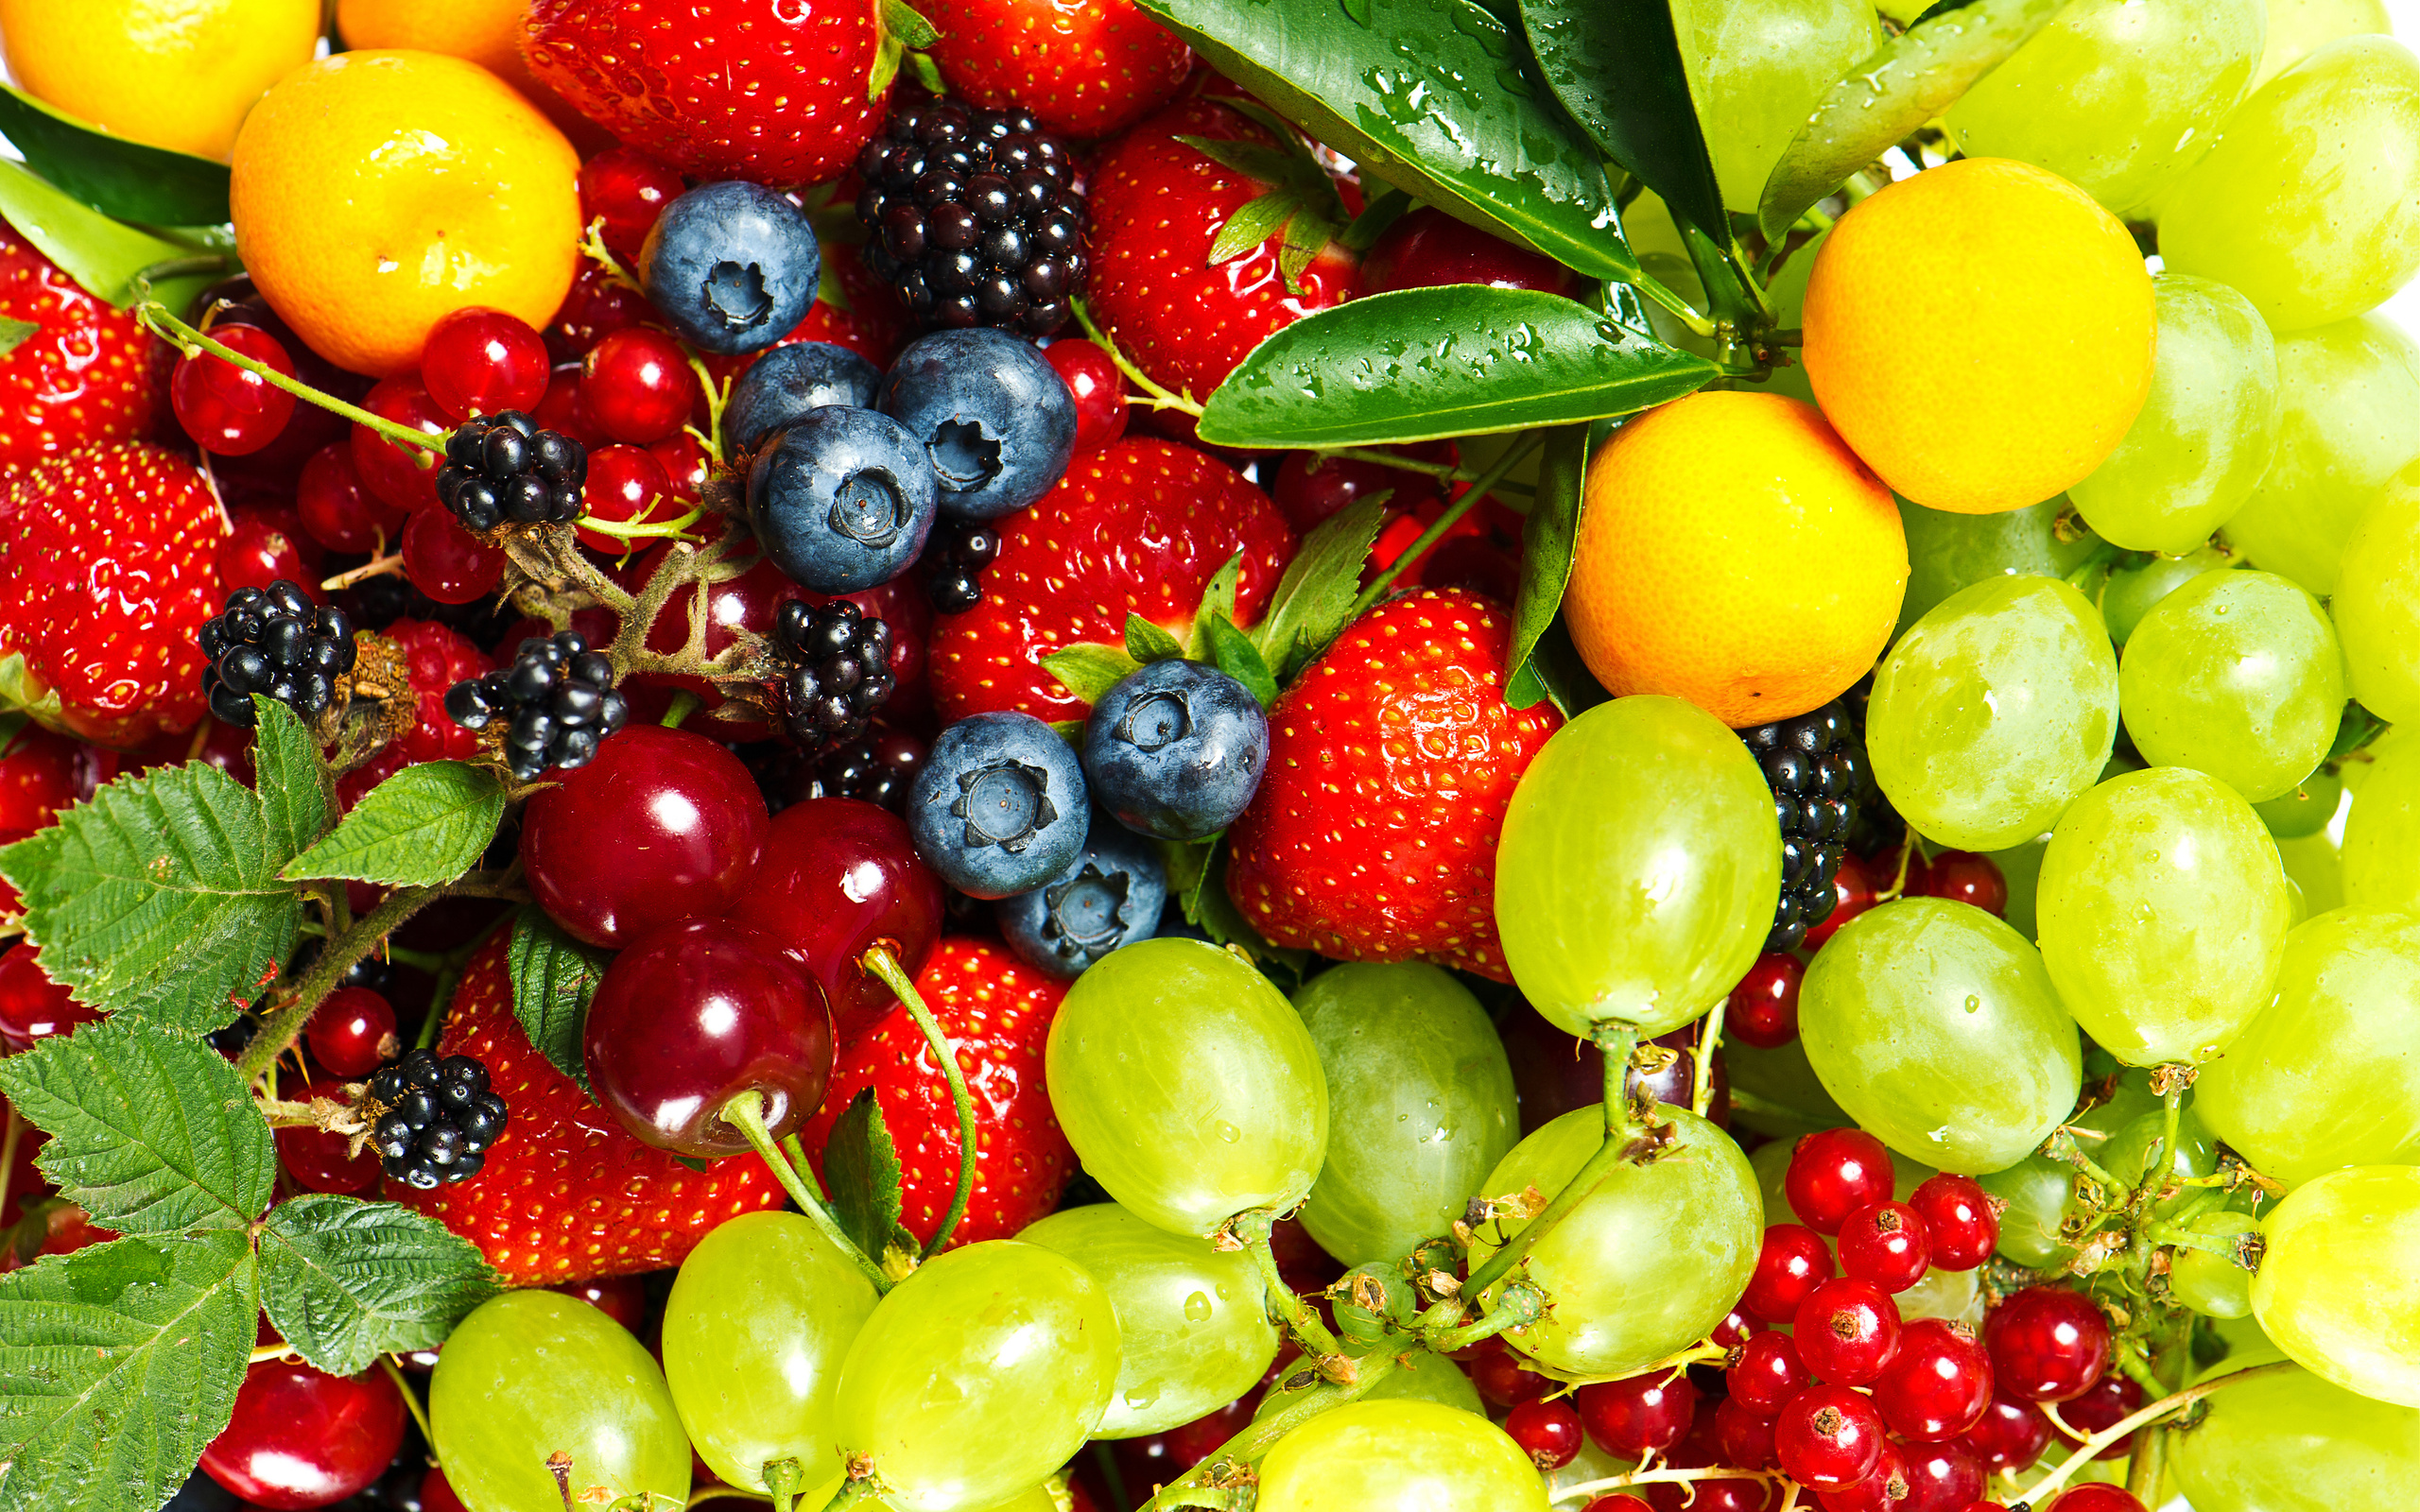 Fruit Wallpaper 20358 2560x1600 px HDWallSourcecom